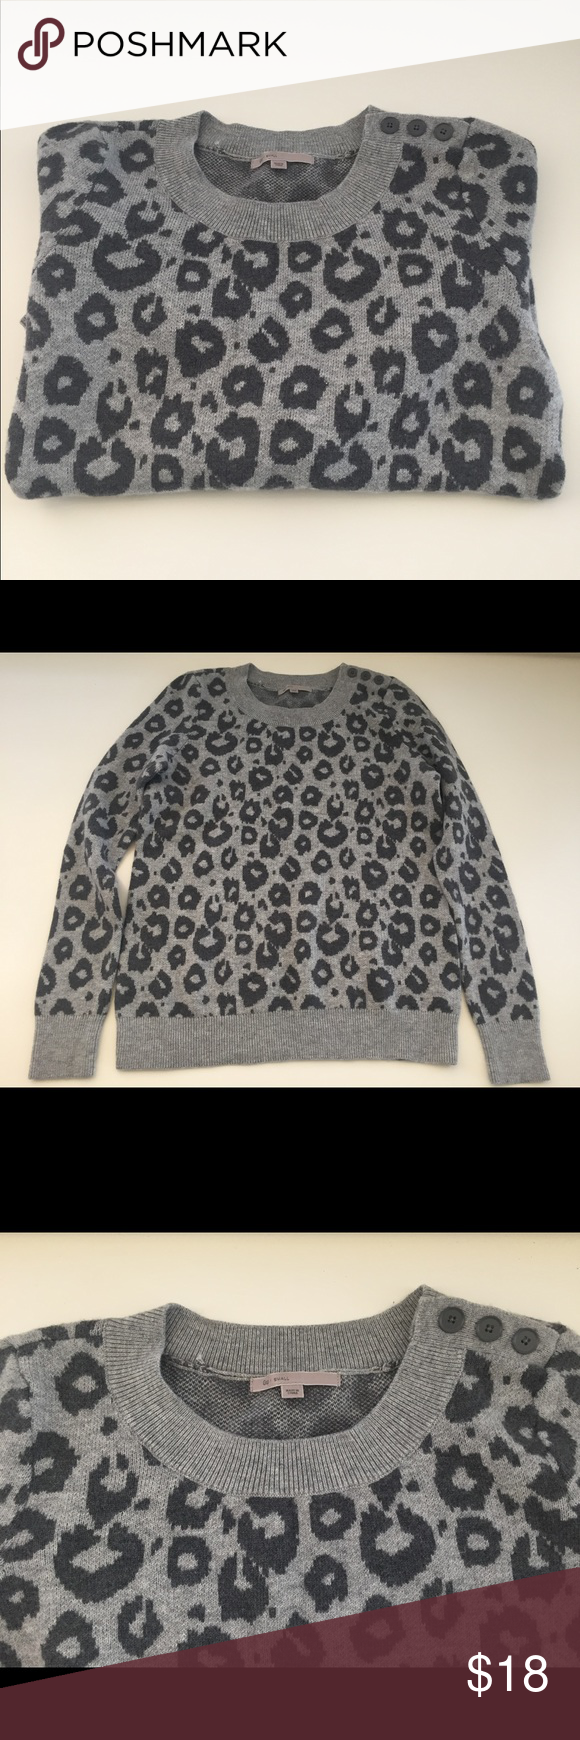 173e361812f2 Gap Gray Leopard Print Sweater Super warm and cozy! Has only been worn  once. GAP Sweaters Crew & Scoop Necks